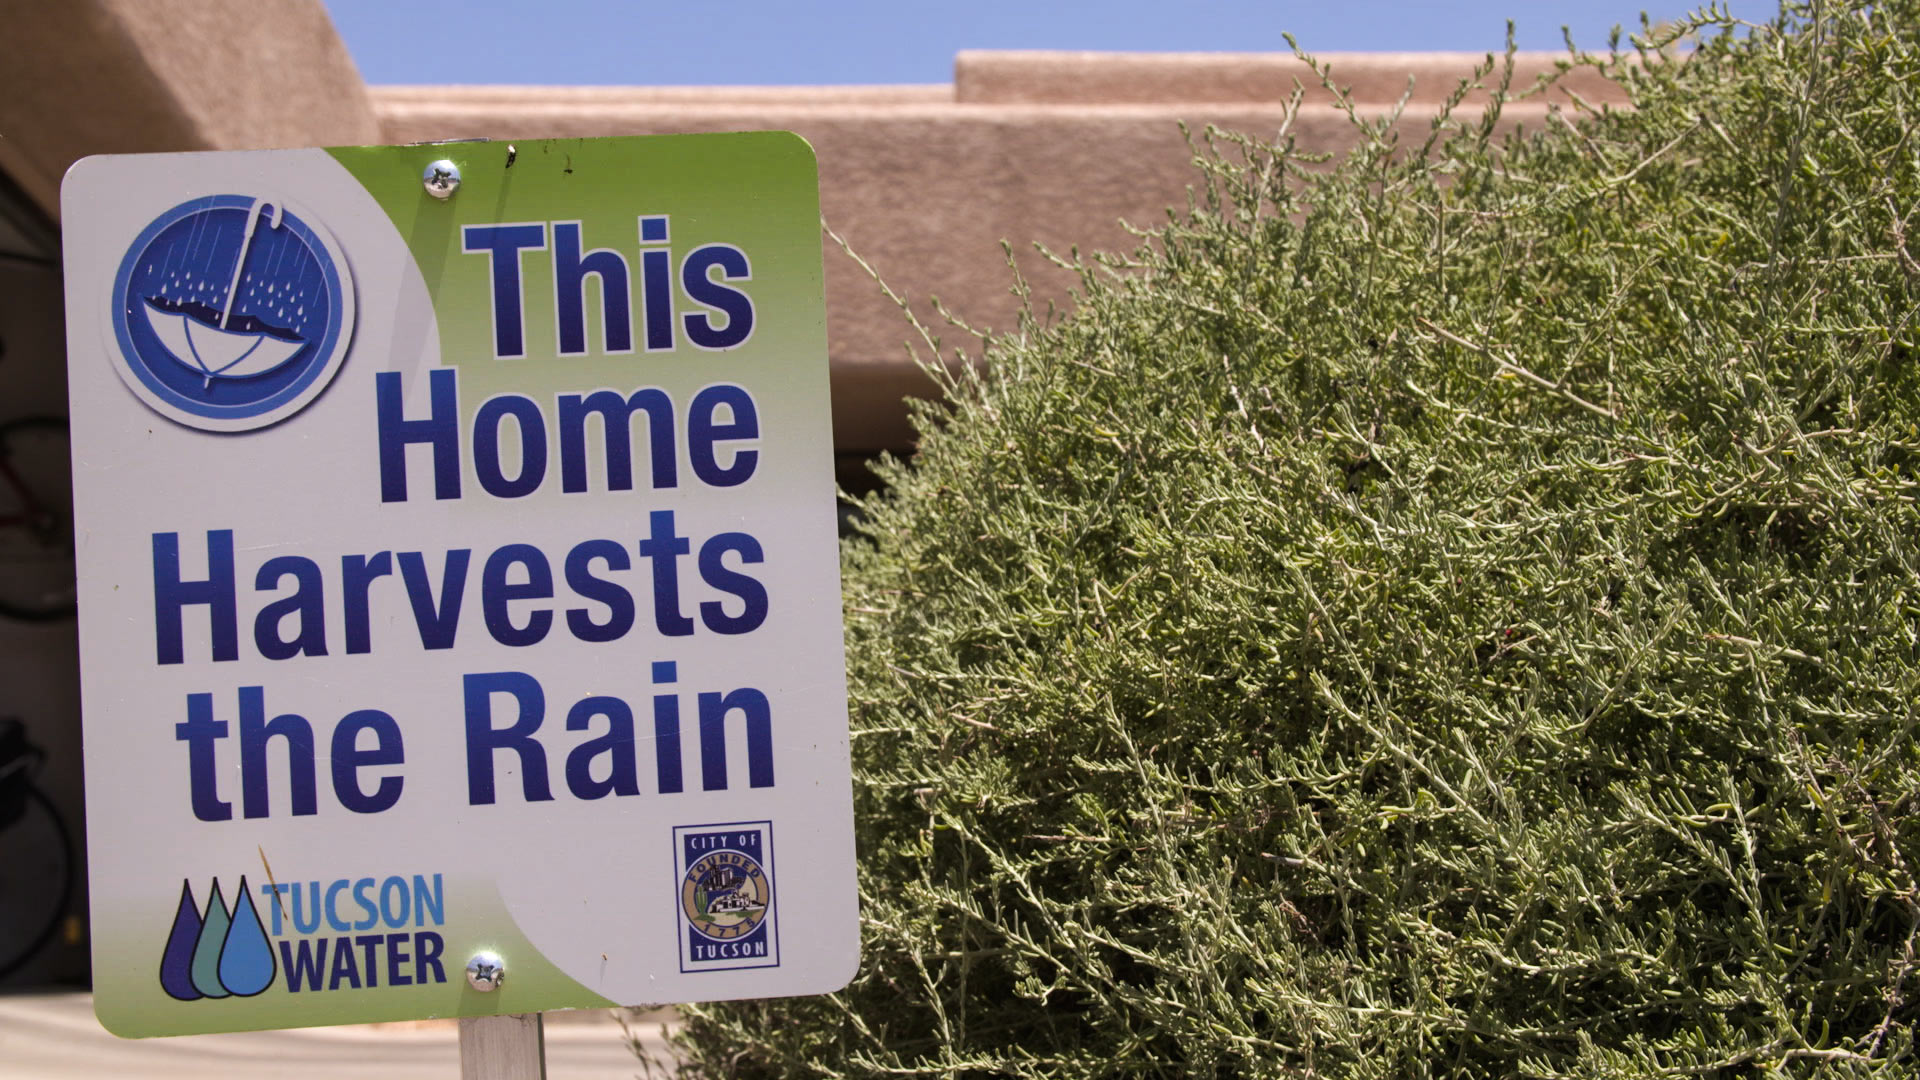 Many Southern Arizona residents employ water-saving techniques, like rainwater harvest.